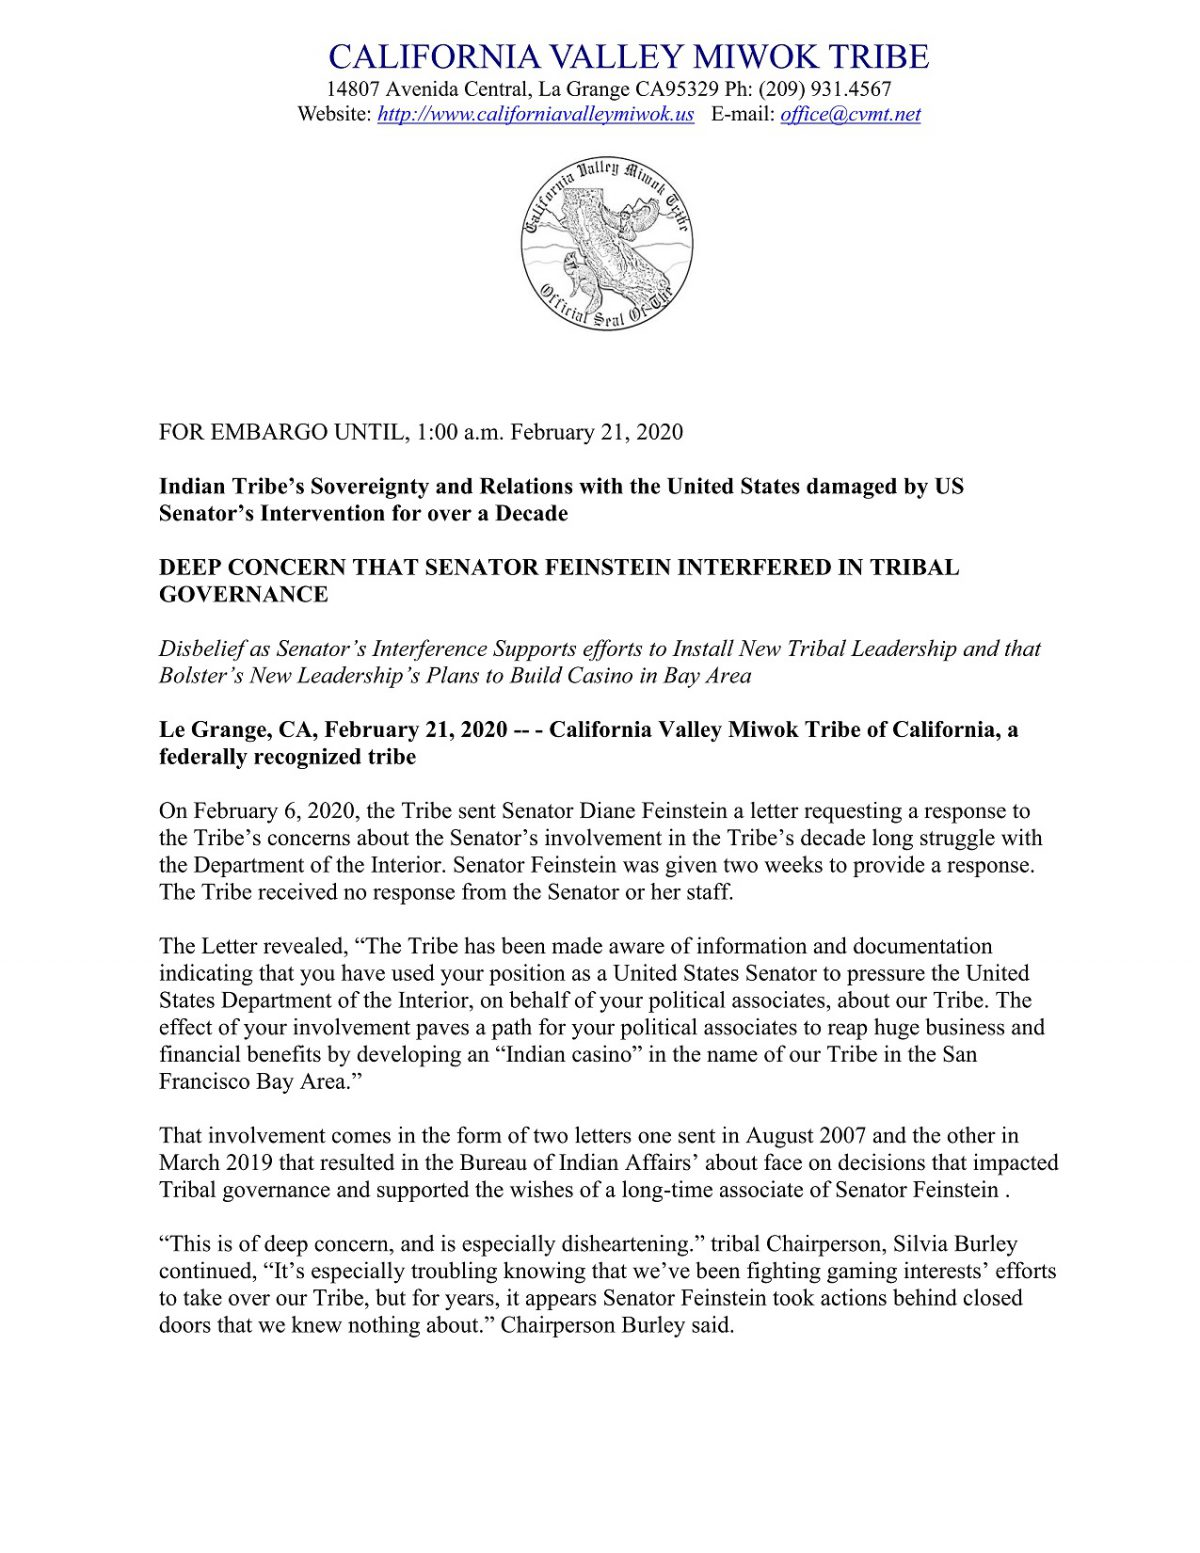 Official tribal press release